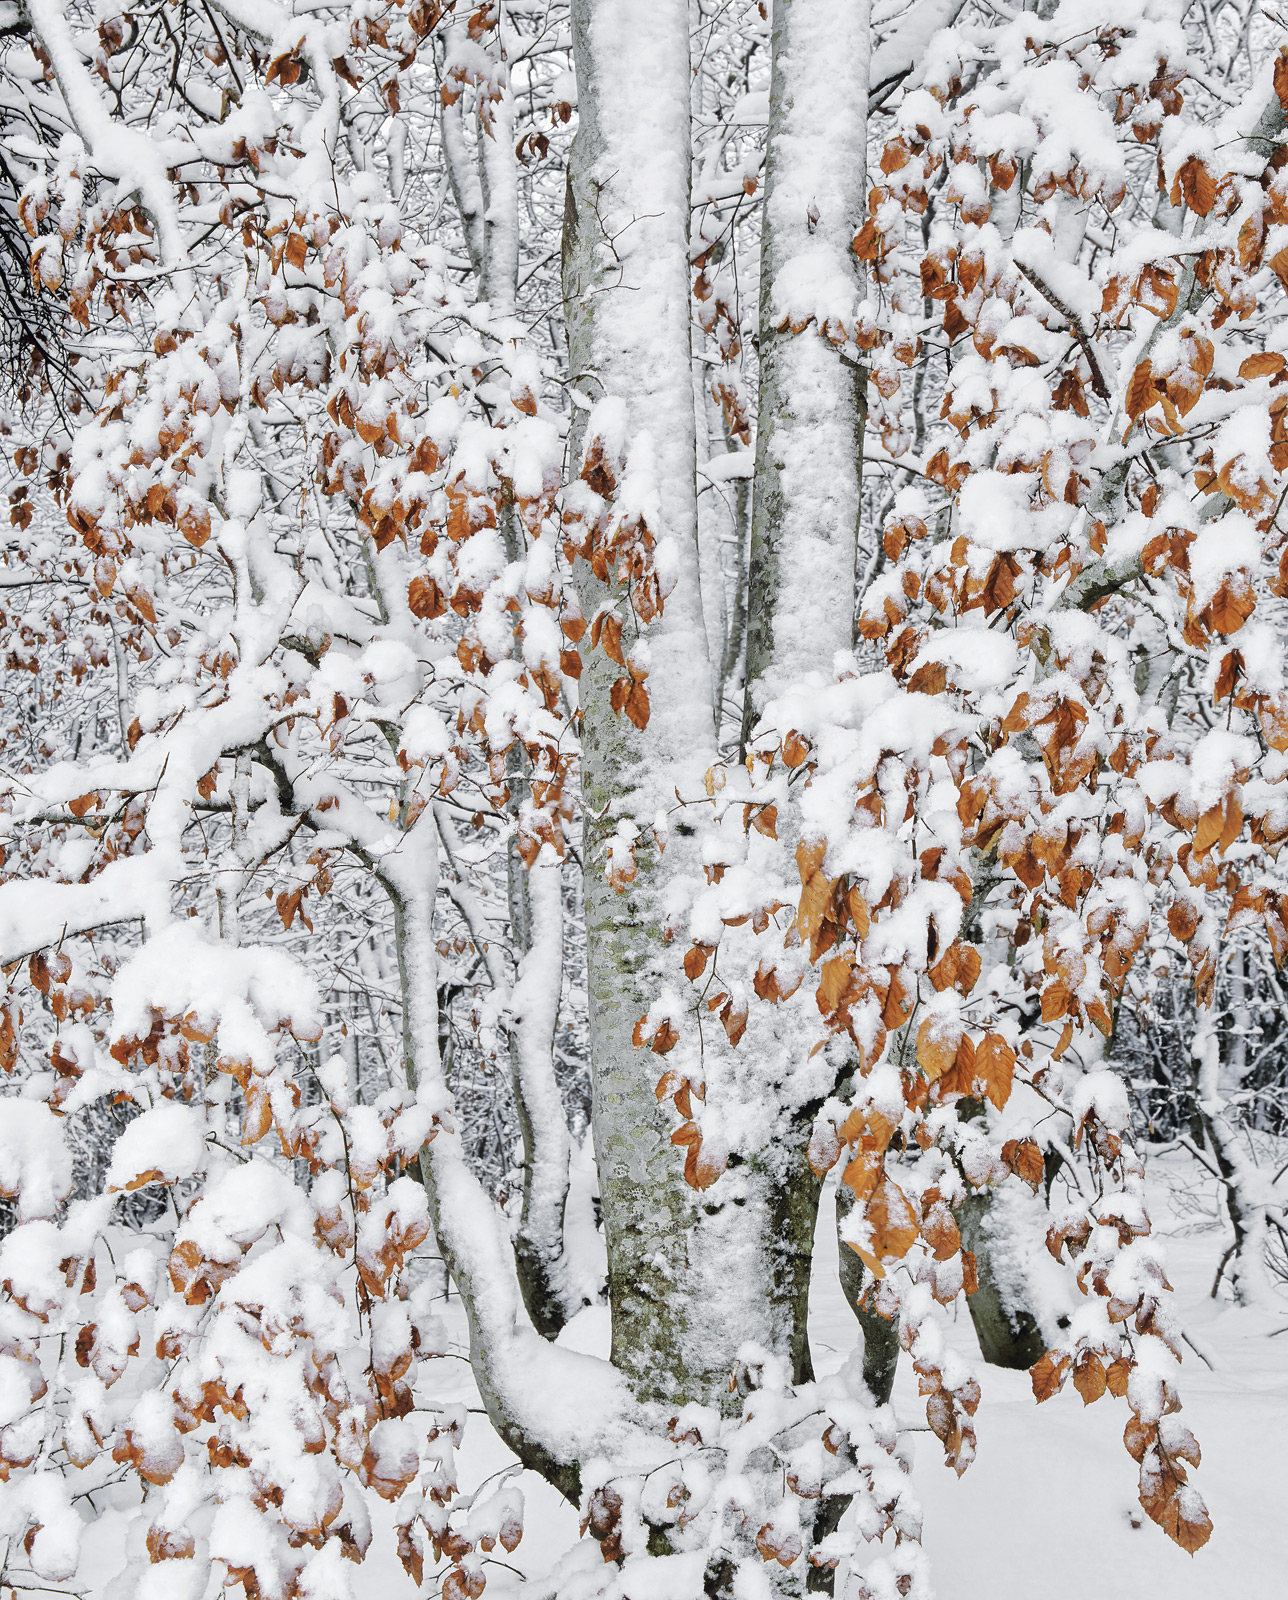 Early wet snow clings to the branches and left over russet brown leaves of a Beech tree that refuses to shed its Autumnal gown...